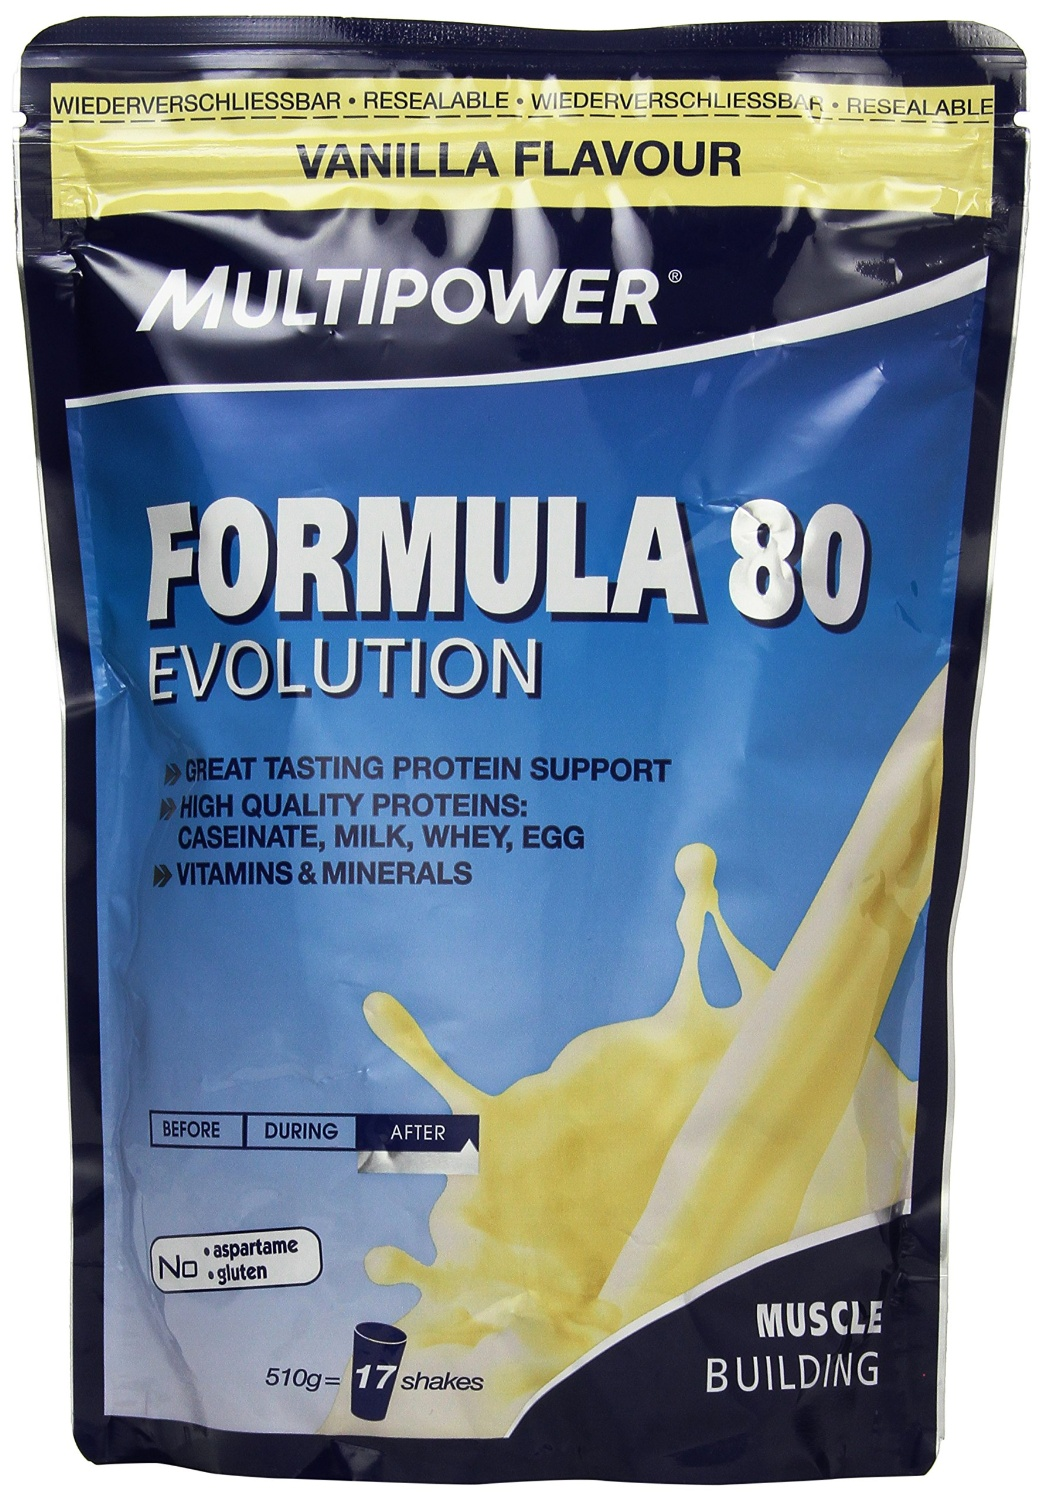 Multipower evolution formula 80